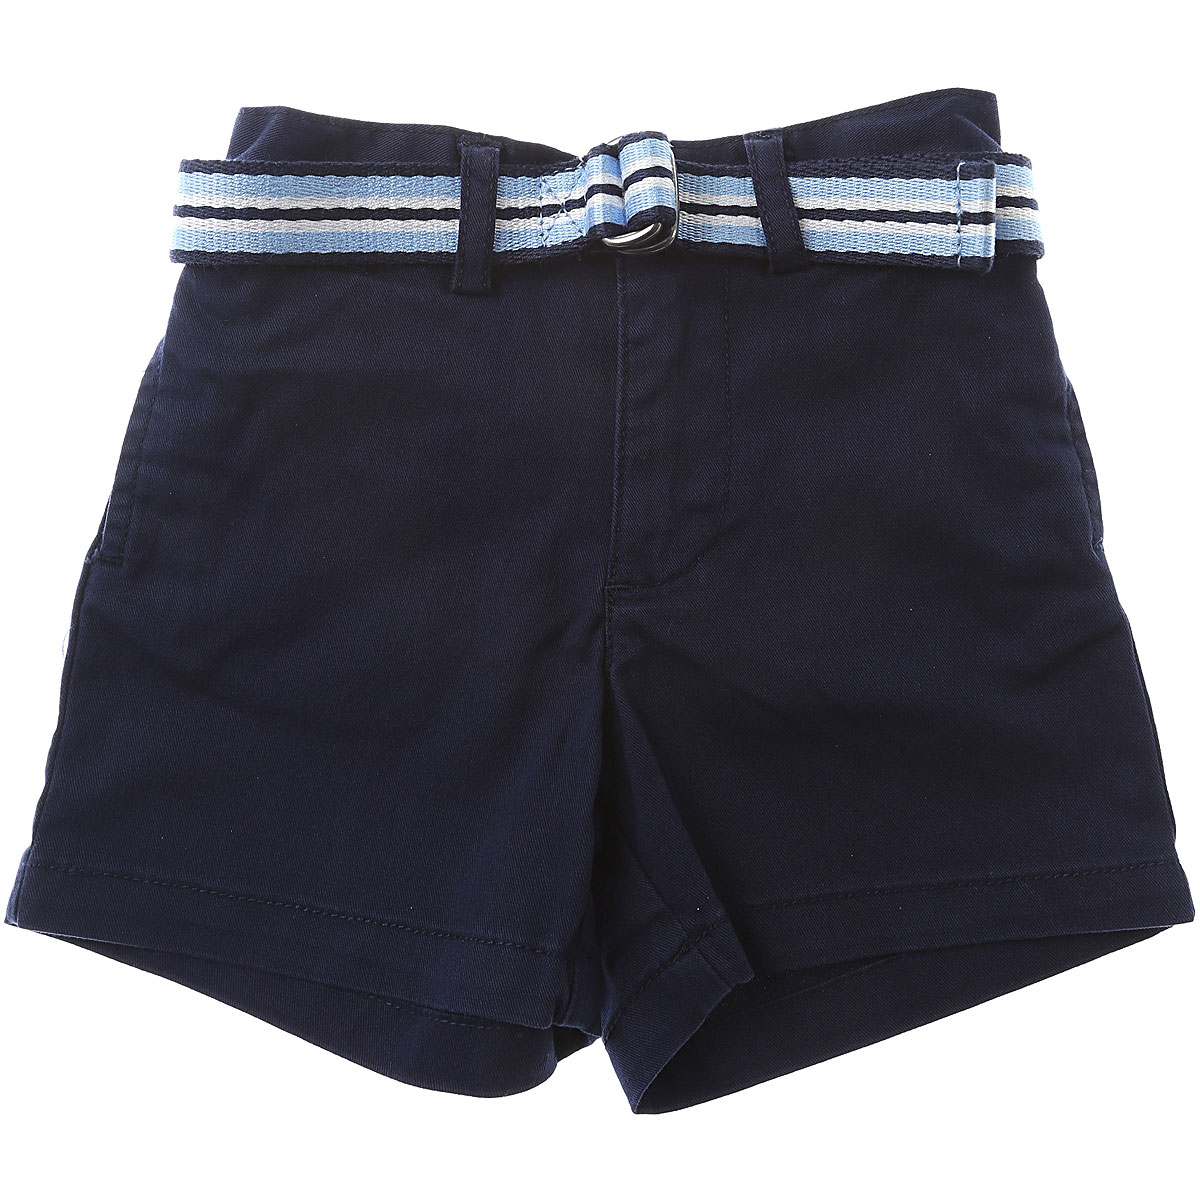 Ralph Lauren Baby Shorts for Boys On Sale in Outlet, navy, Cotton, 2019, 9 M 9M